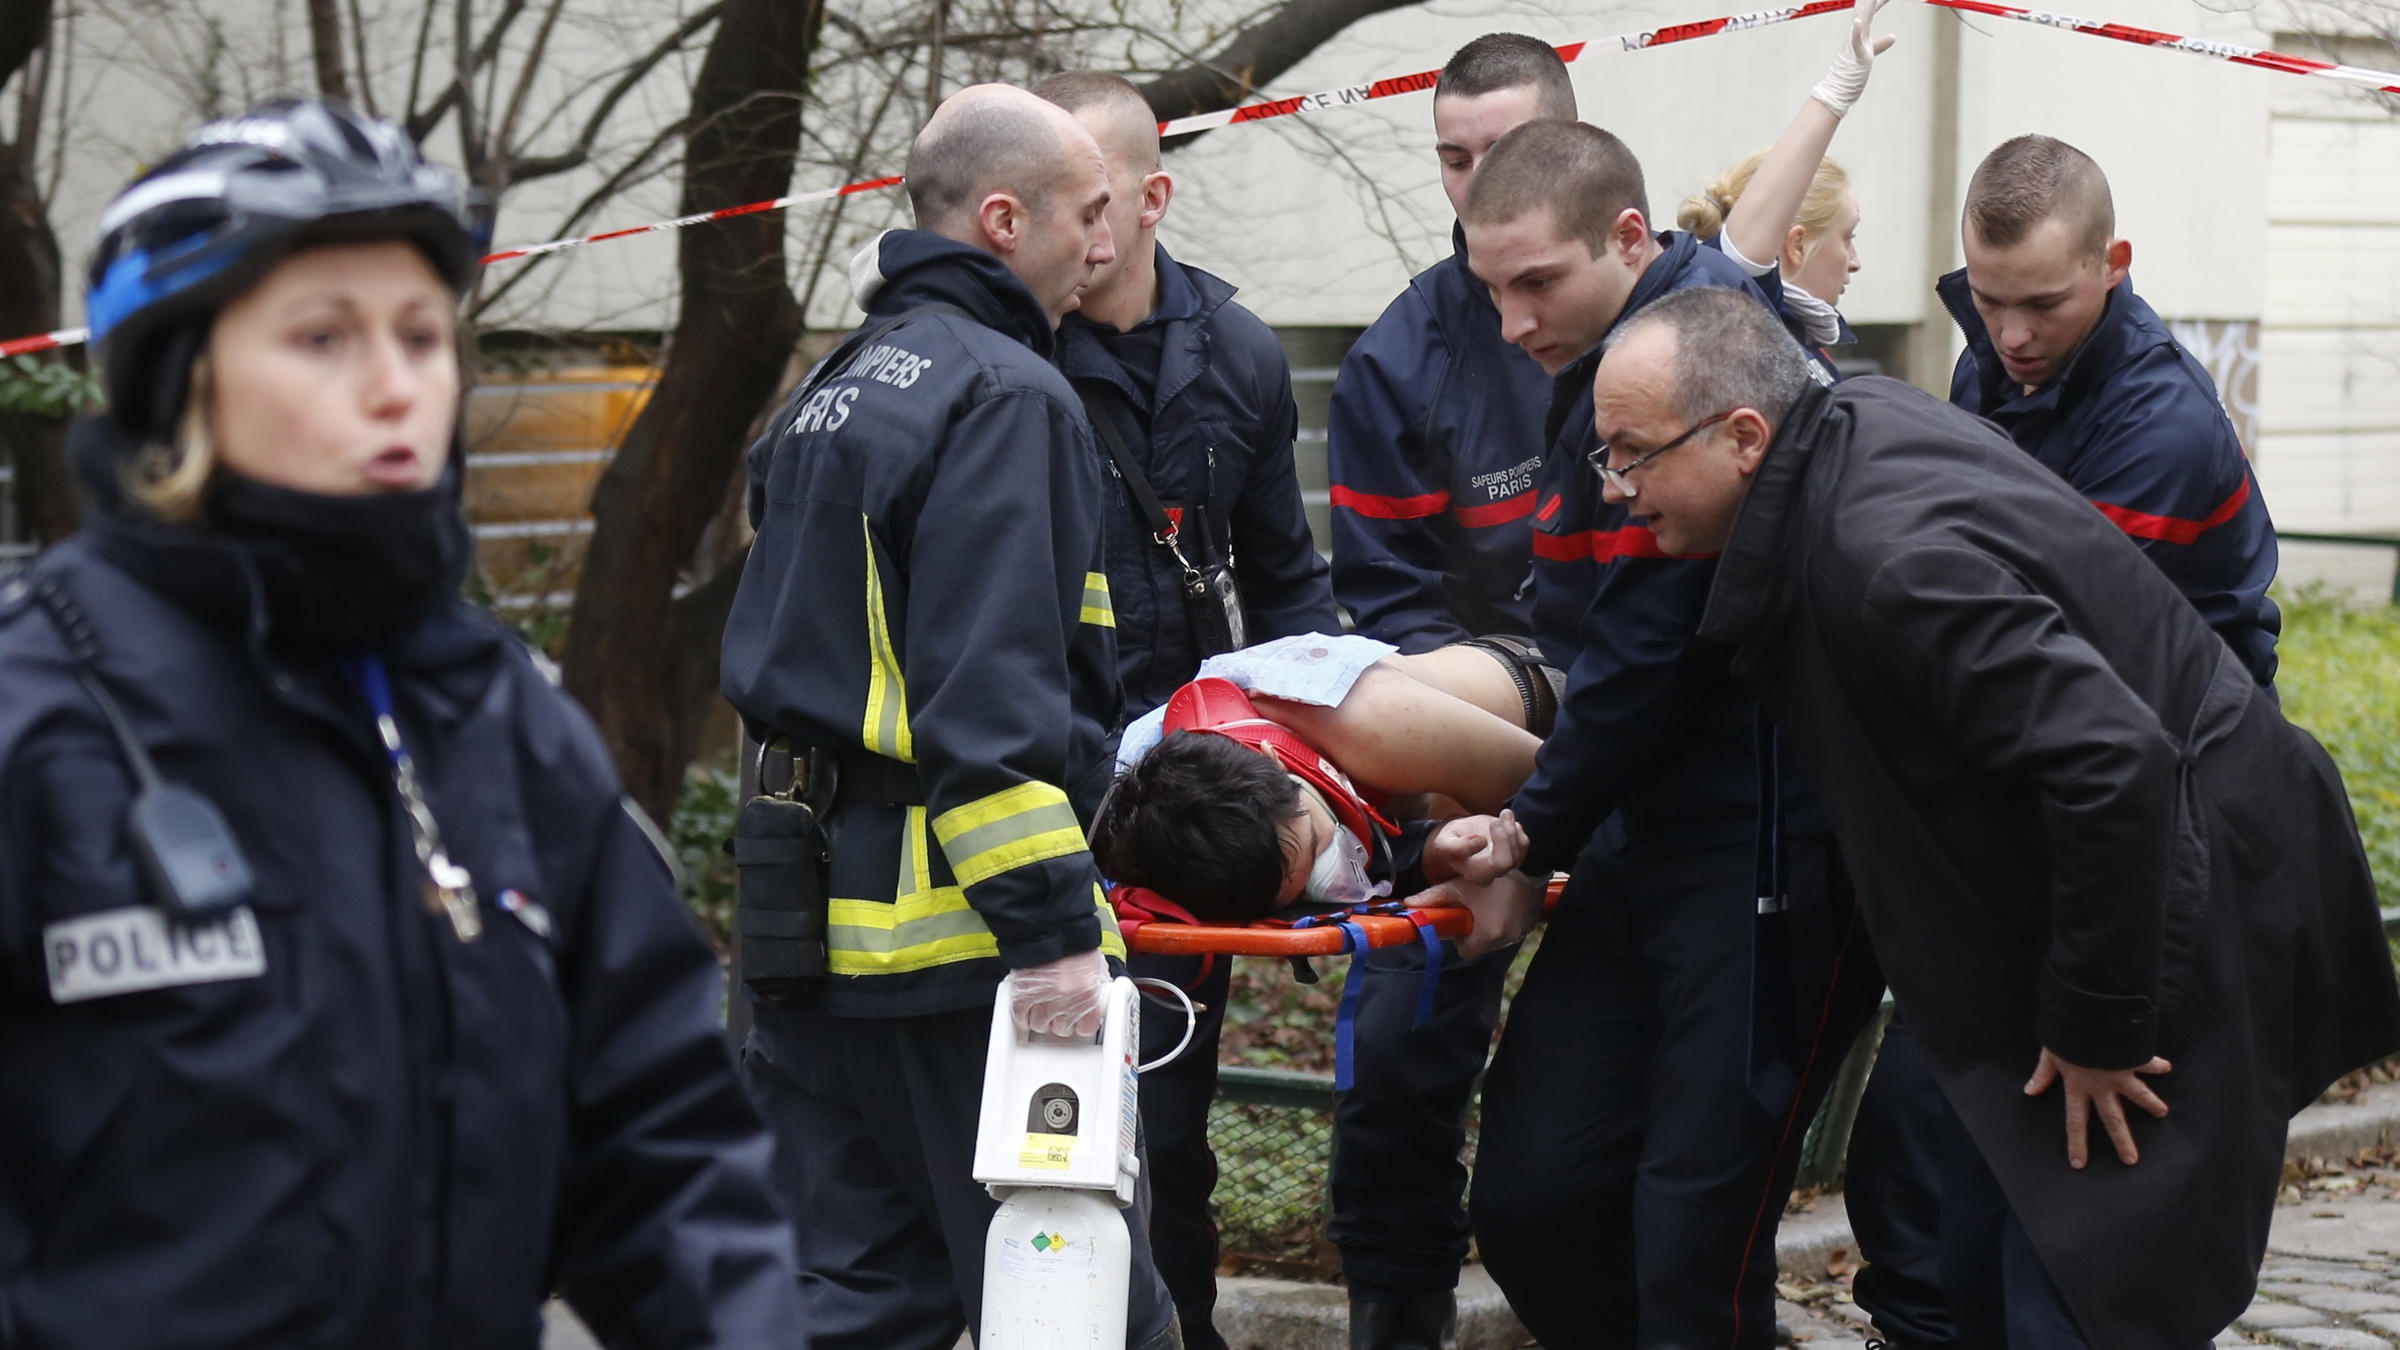 Firefighters carry a victim on a stretcher at the scene after a shooting at the Paris offices of Charlie Hebdo, a satirical newspaper,